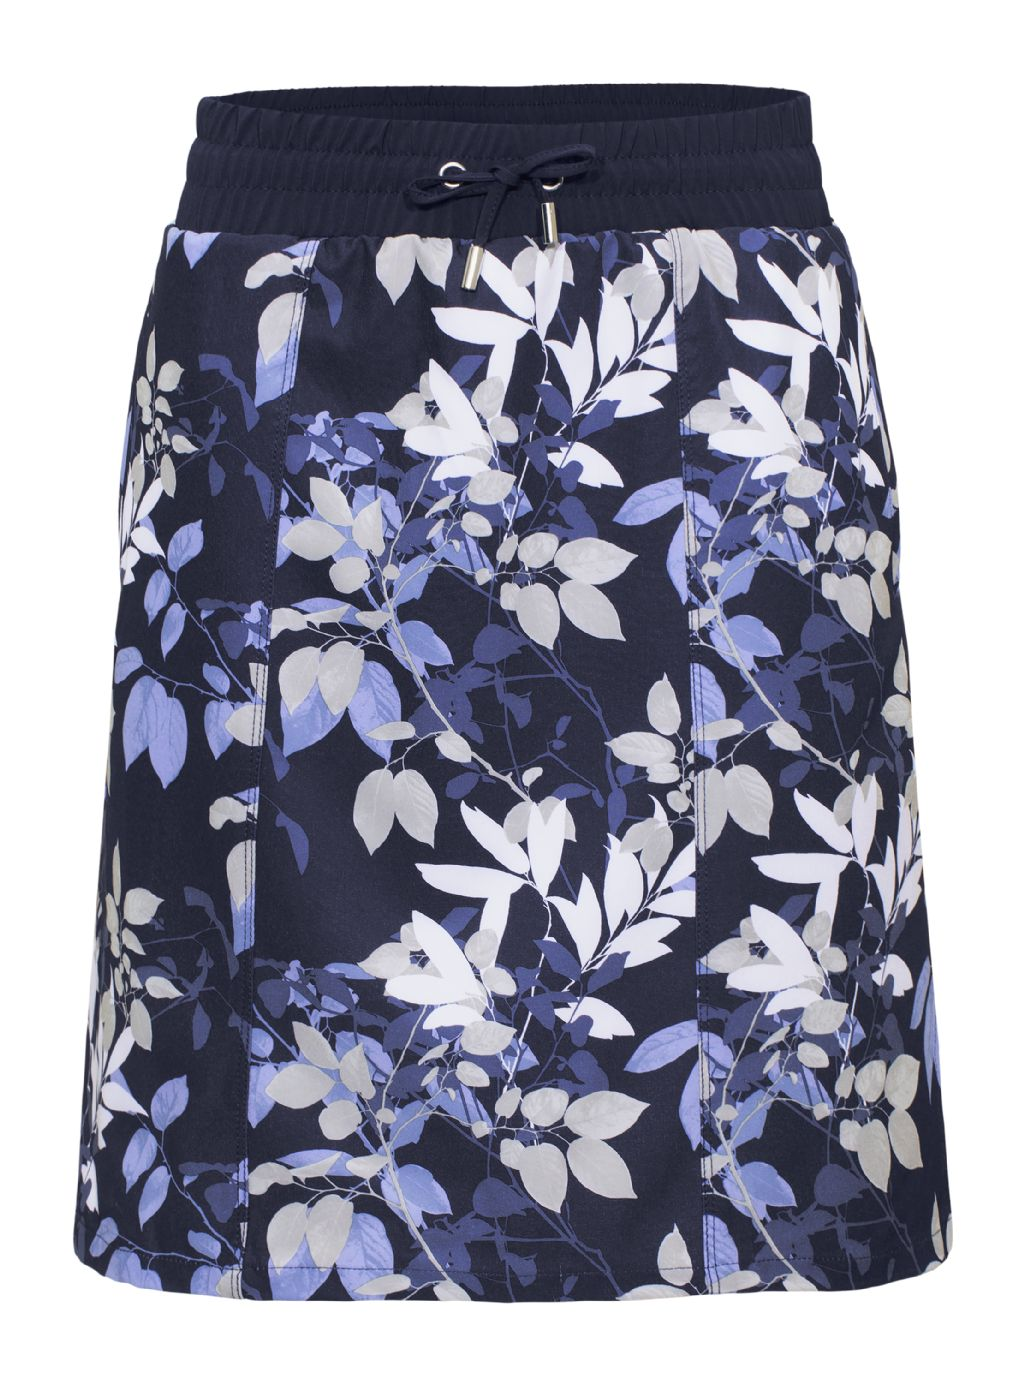 Rohnisch  Comfort Skort - Navy Leaves